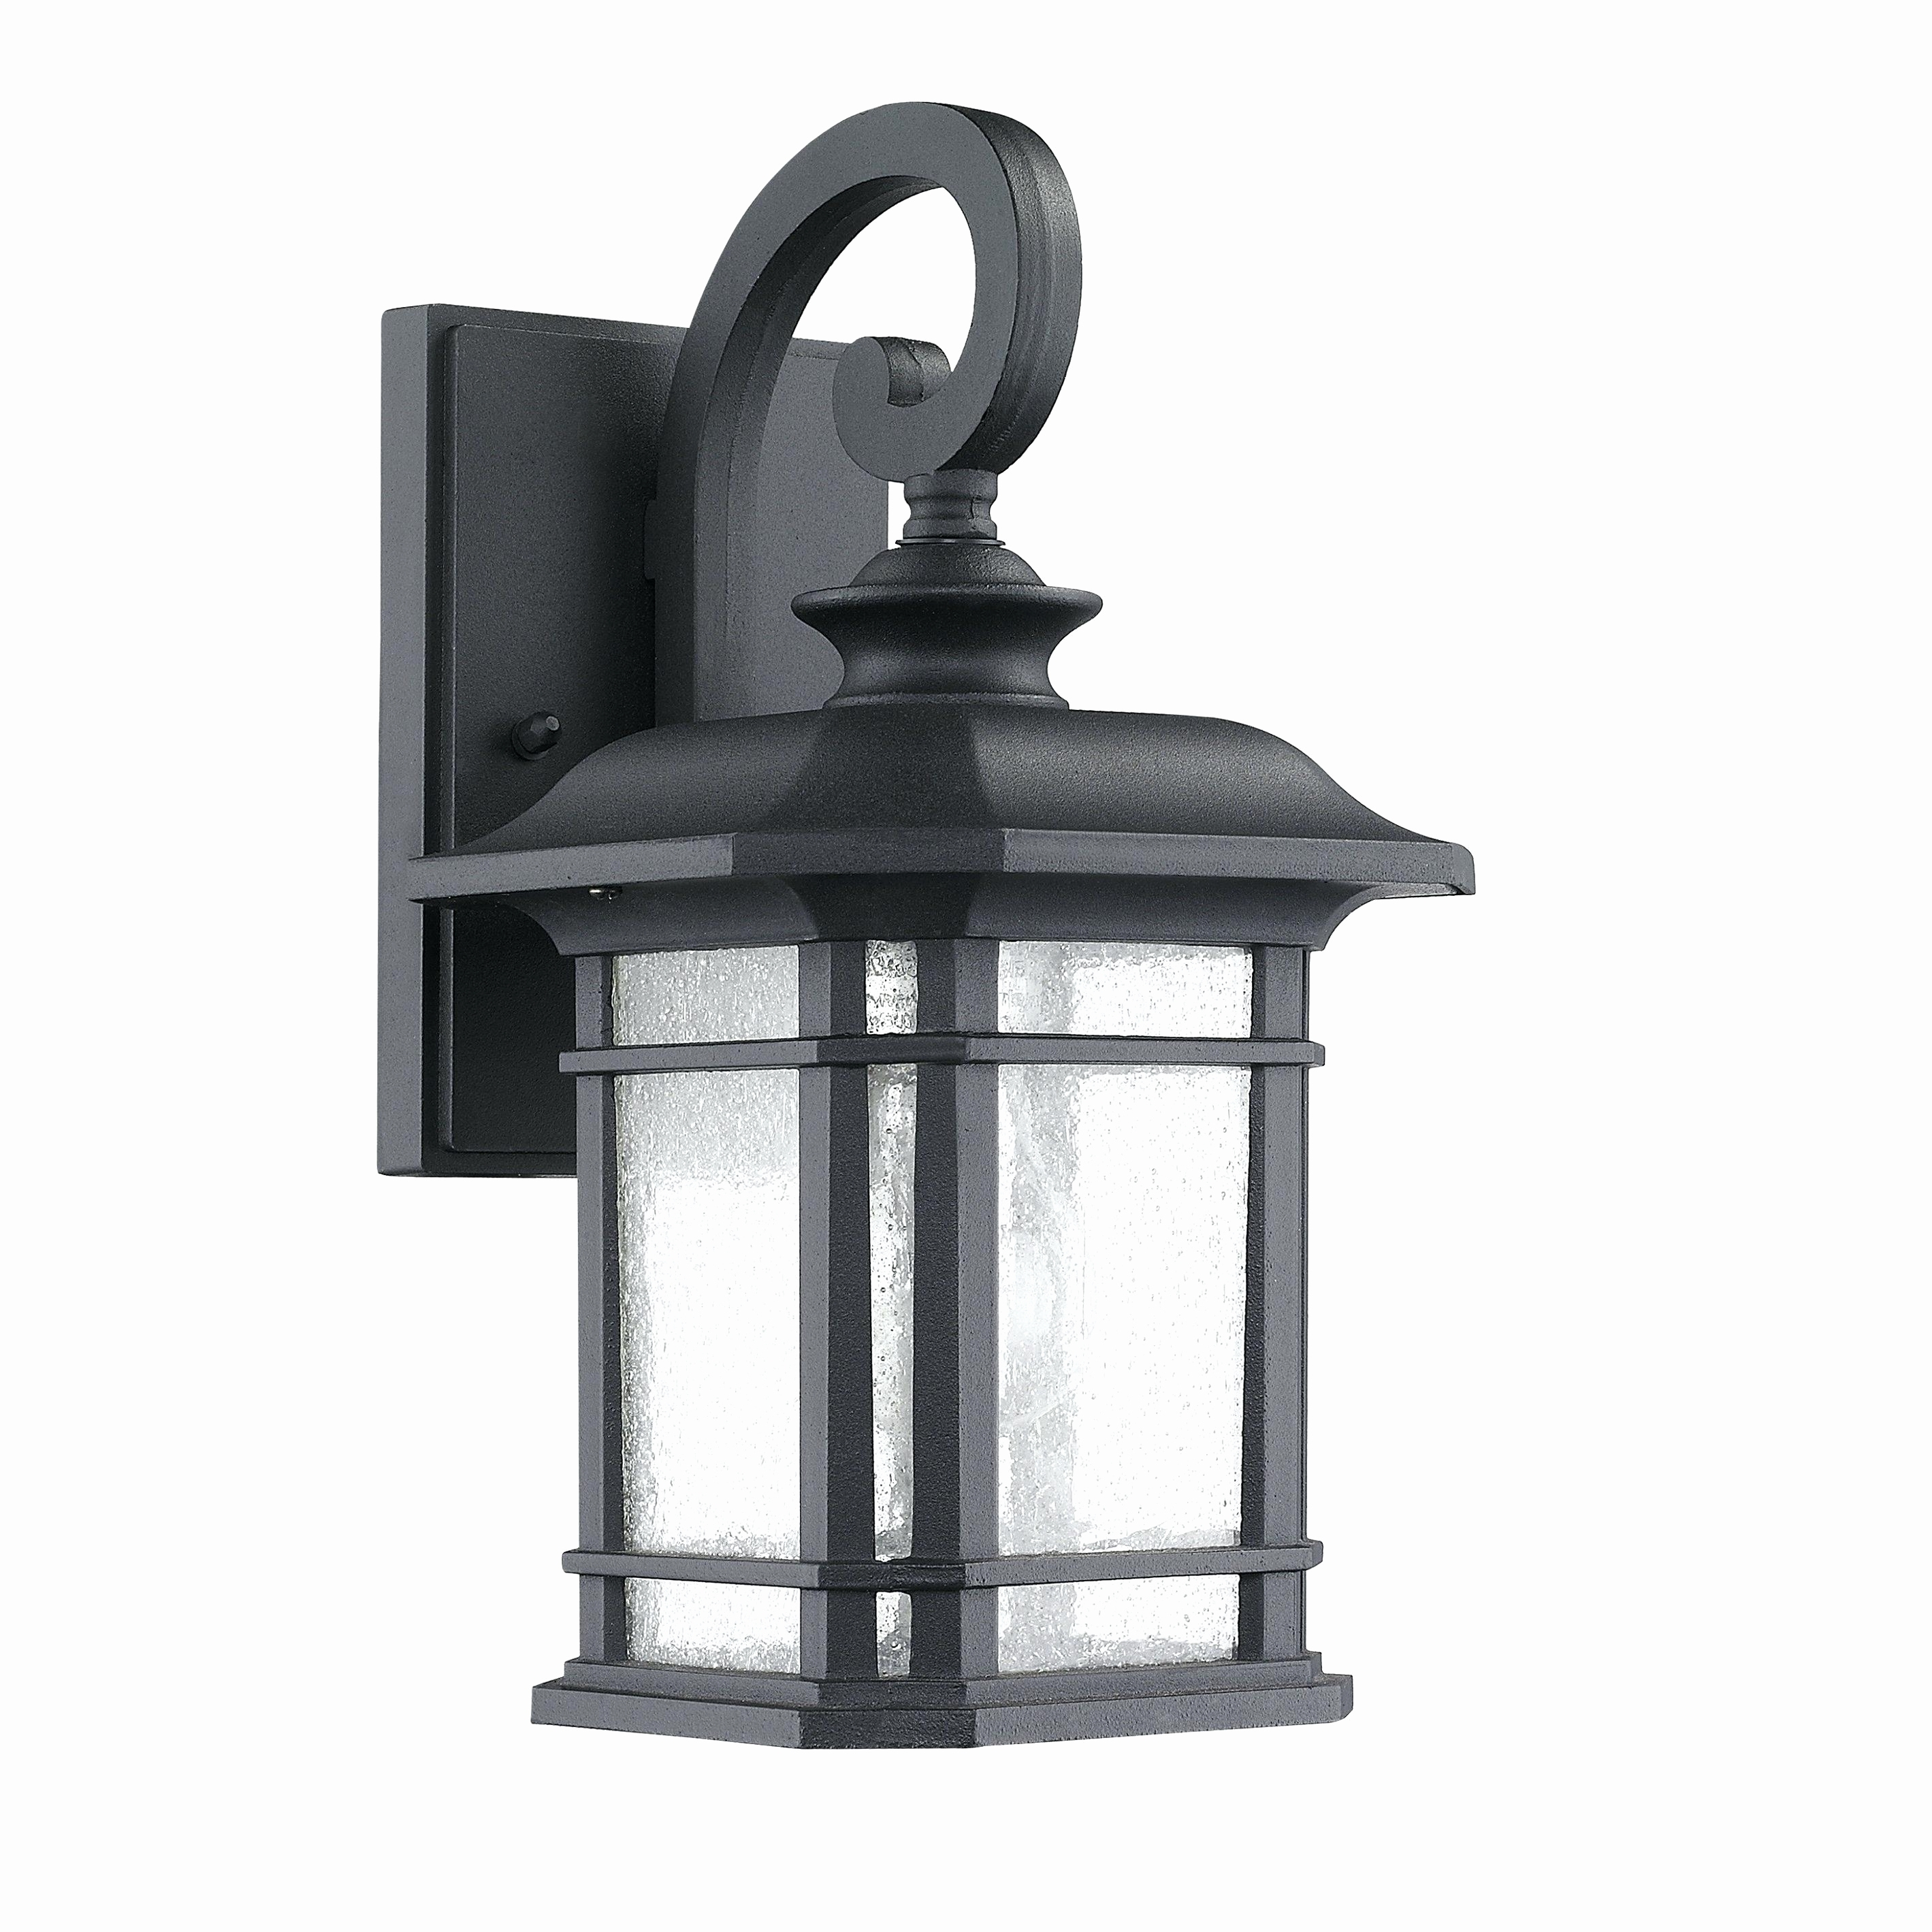 Motion Sensor Post Light Elegant Outdoor Garage Outdoor Lanterns regarding Elegant Outdoor Lanterns (Image 9 of 20)